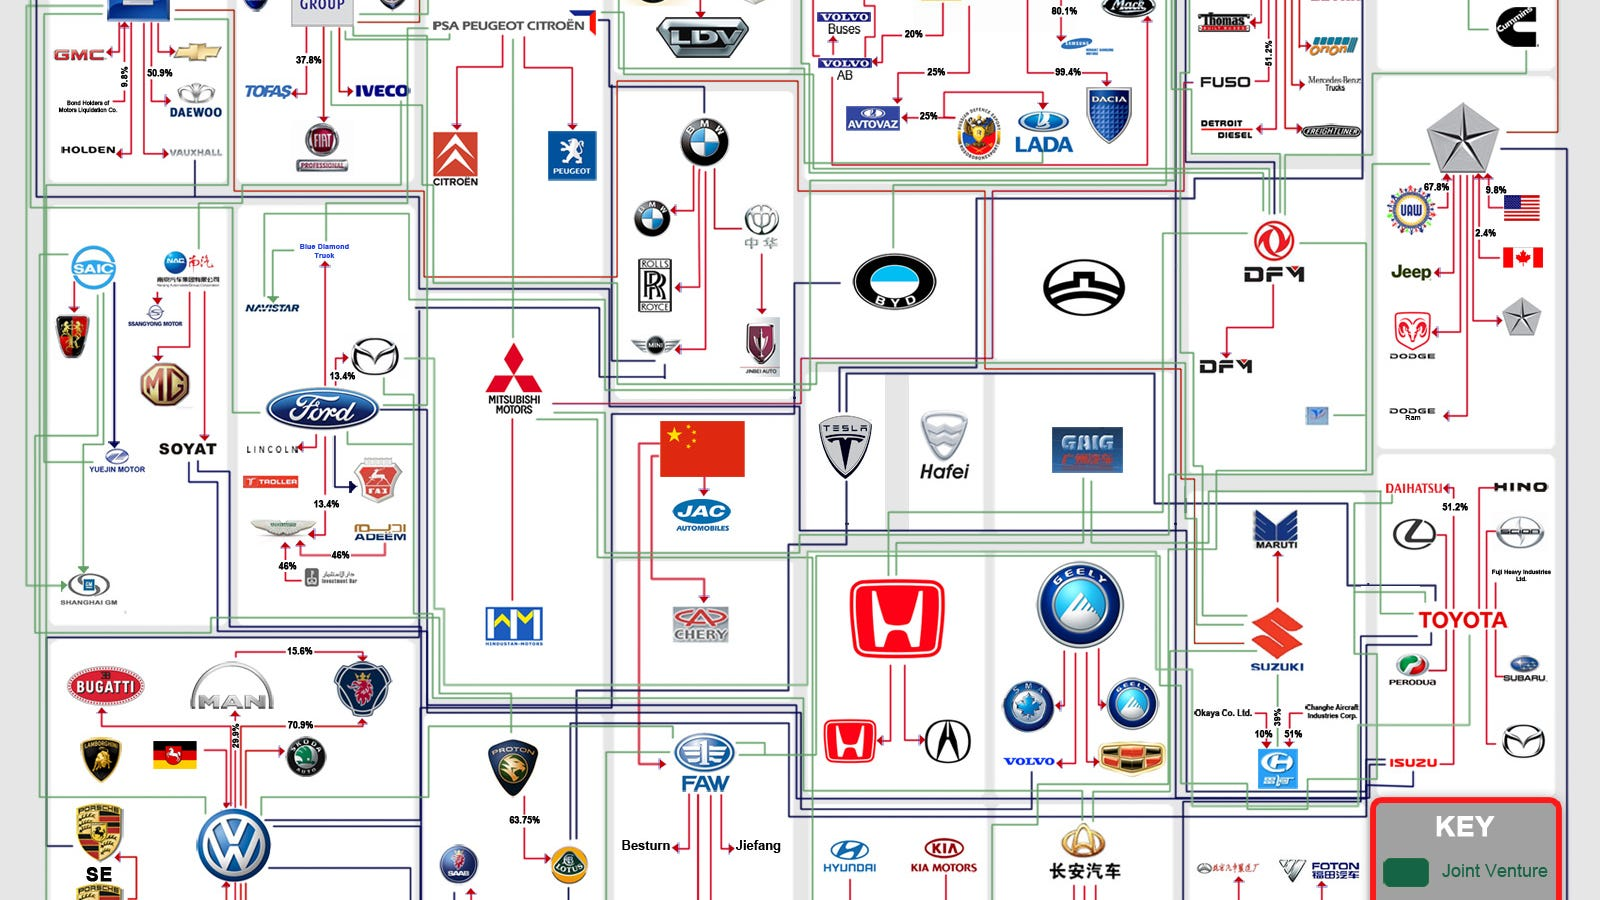 Who Owns Land Rover >> Who Owns Who: An Automaker Family Tree